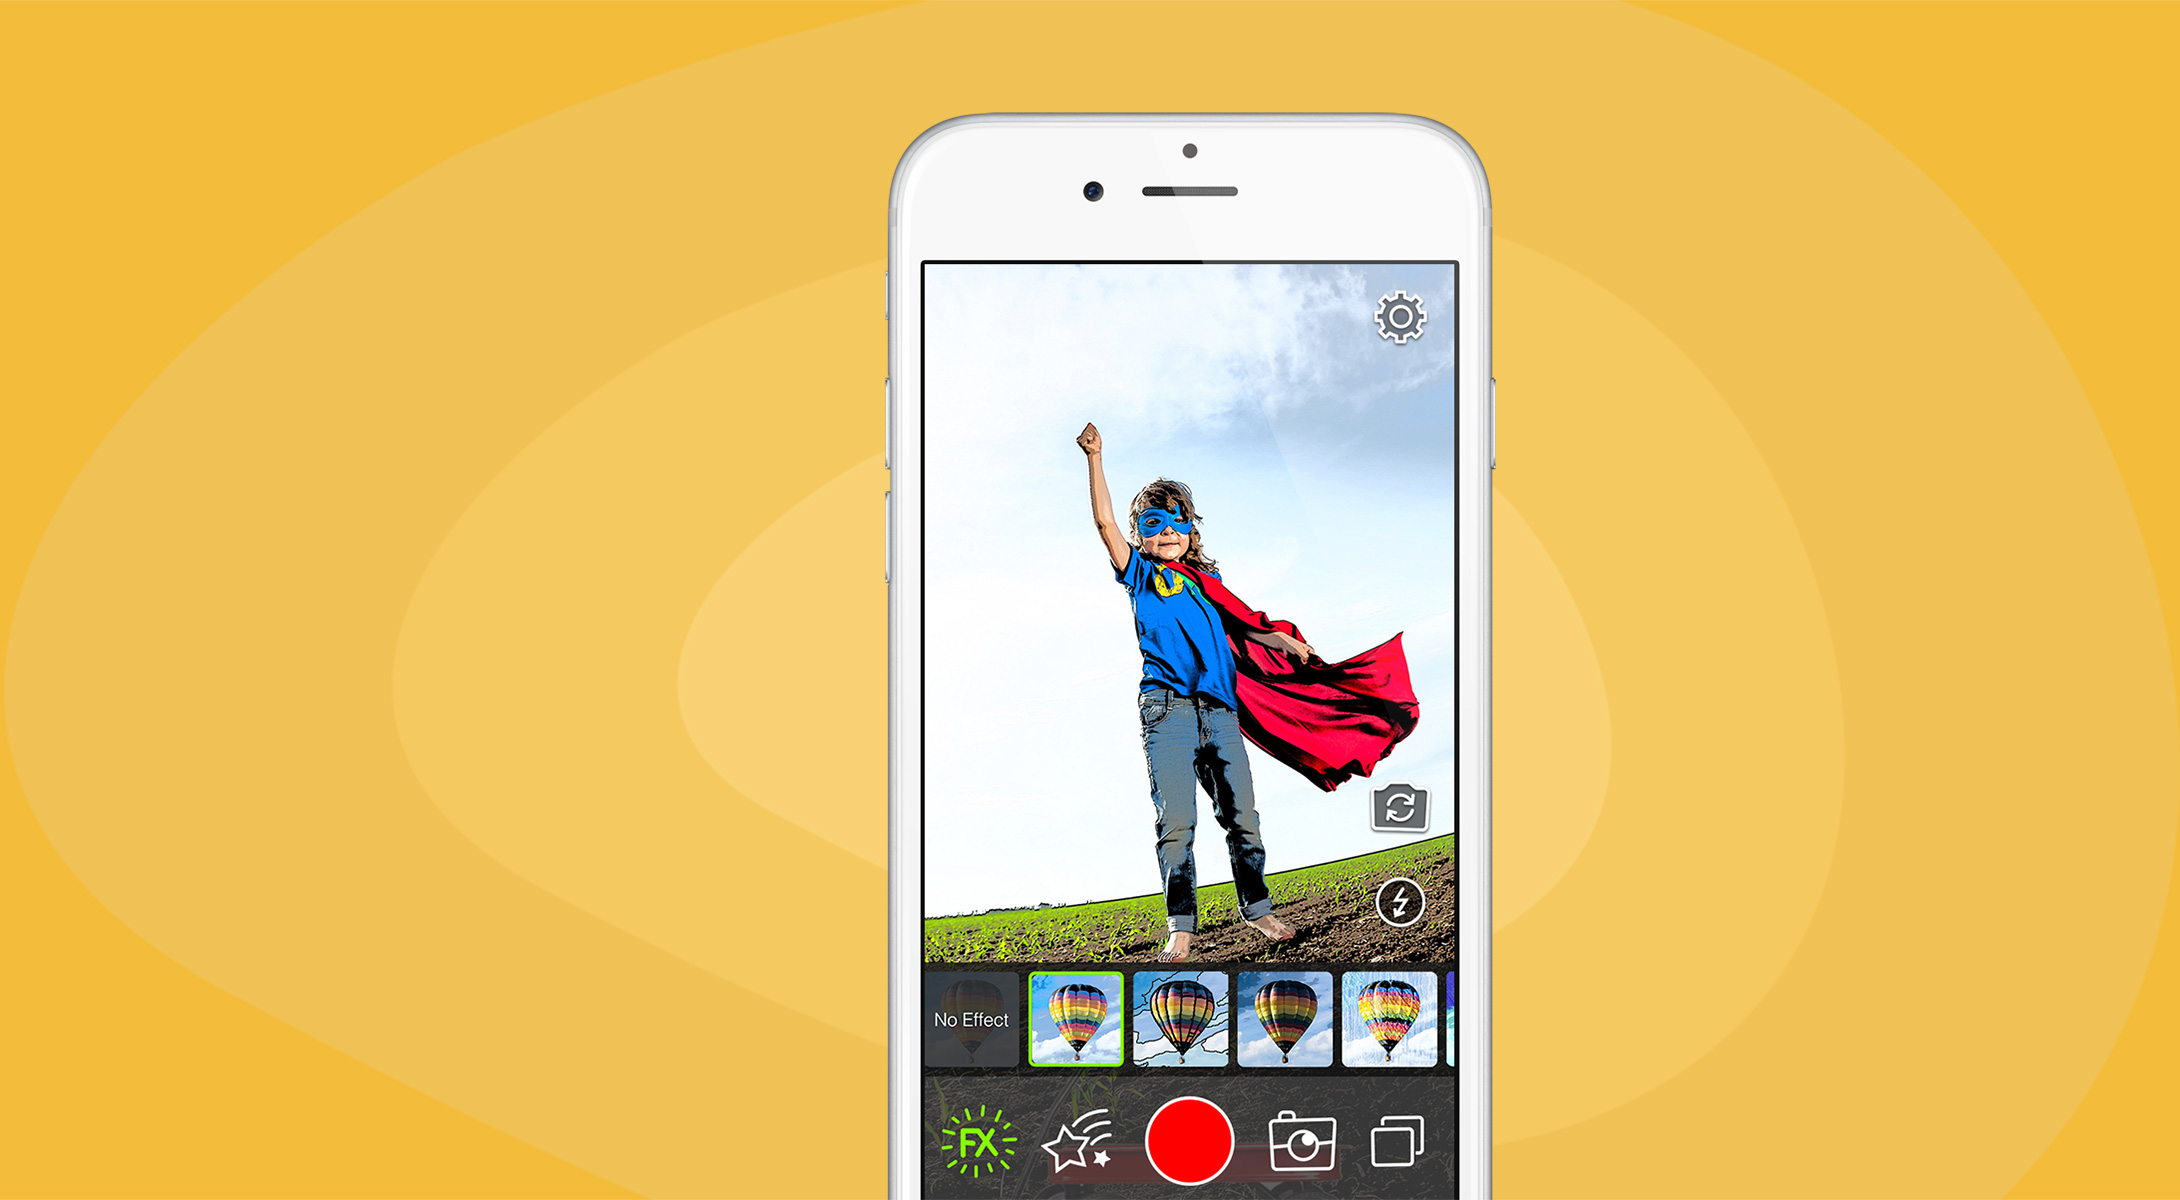 Cartoonatic - make cartoon style videos and photos on iPhone